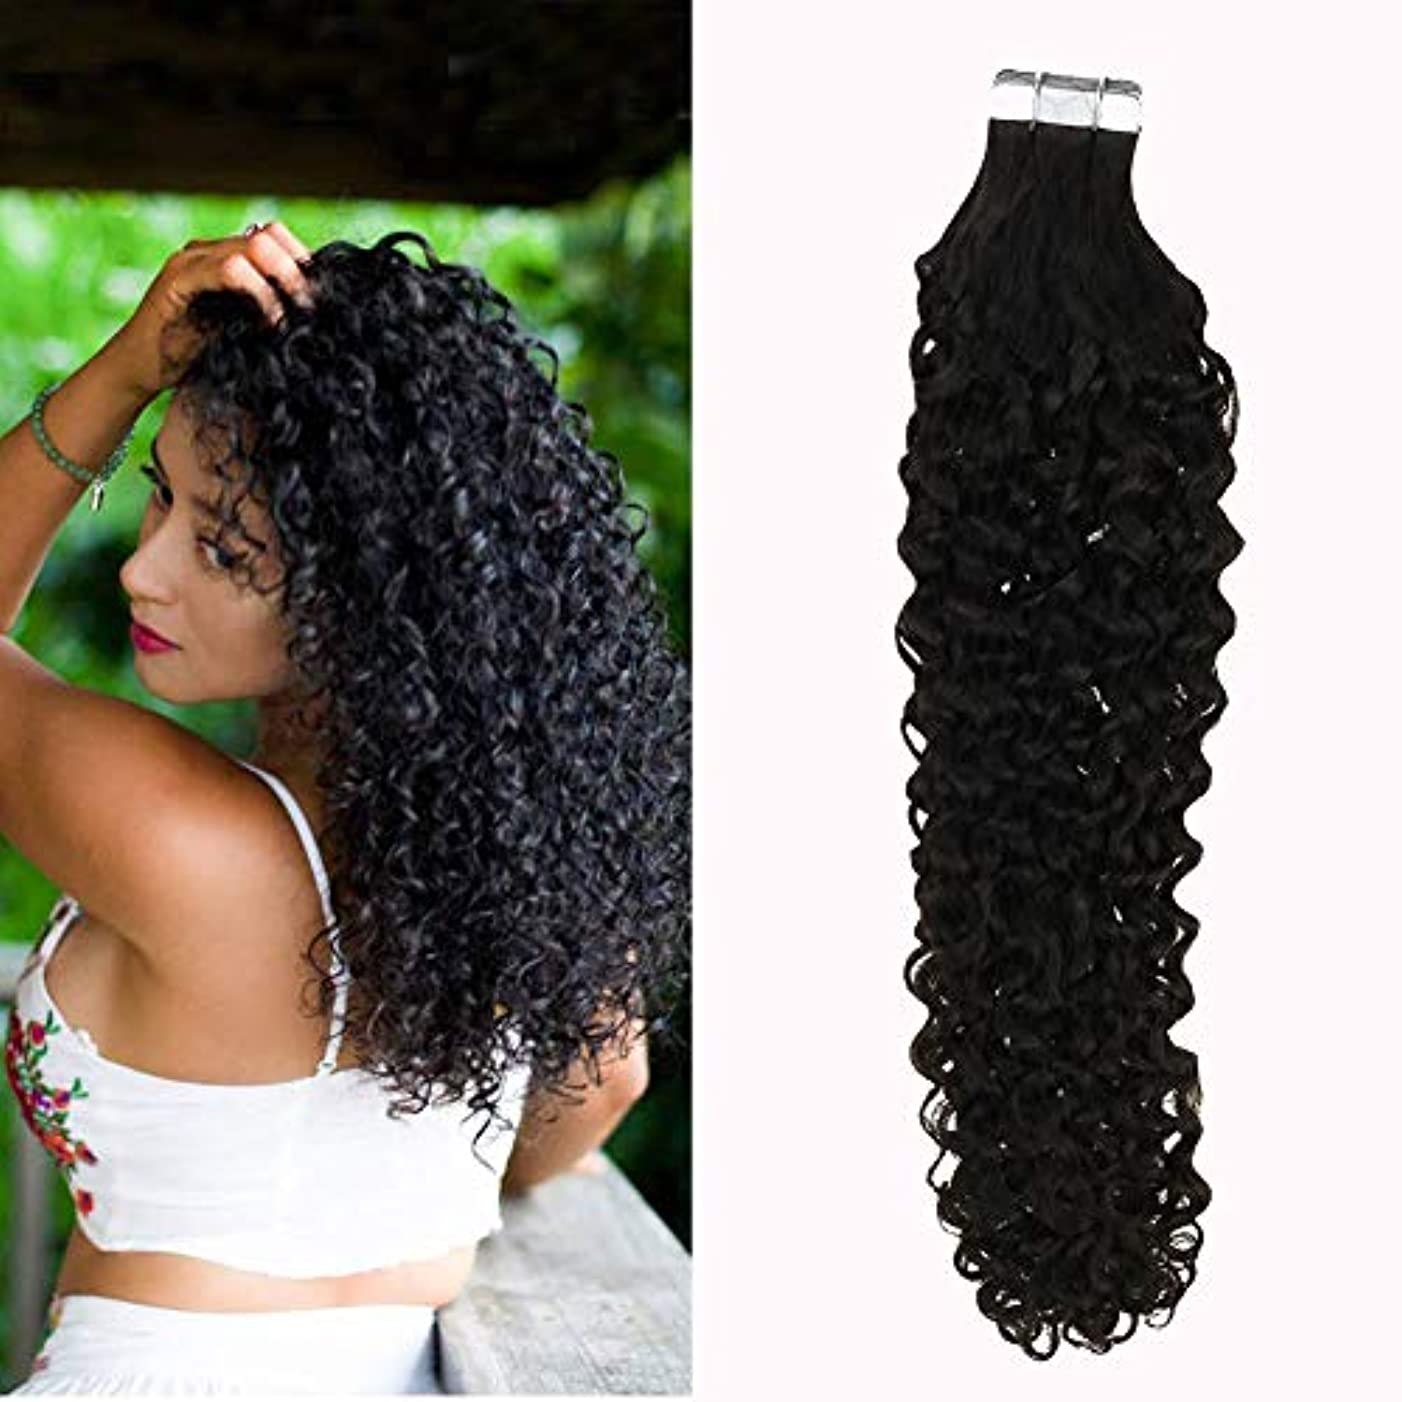 Moresoo 24 Inch Long Remy Hair Tape in Curly Extensions Human Hair Brazilian Hair Off Black Color #1B Human Hair Extensions with Invisible Tape Kinky Curly 20pcs/50g